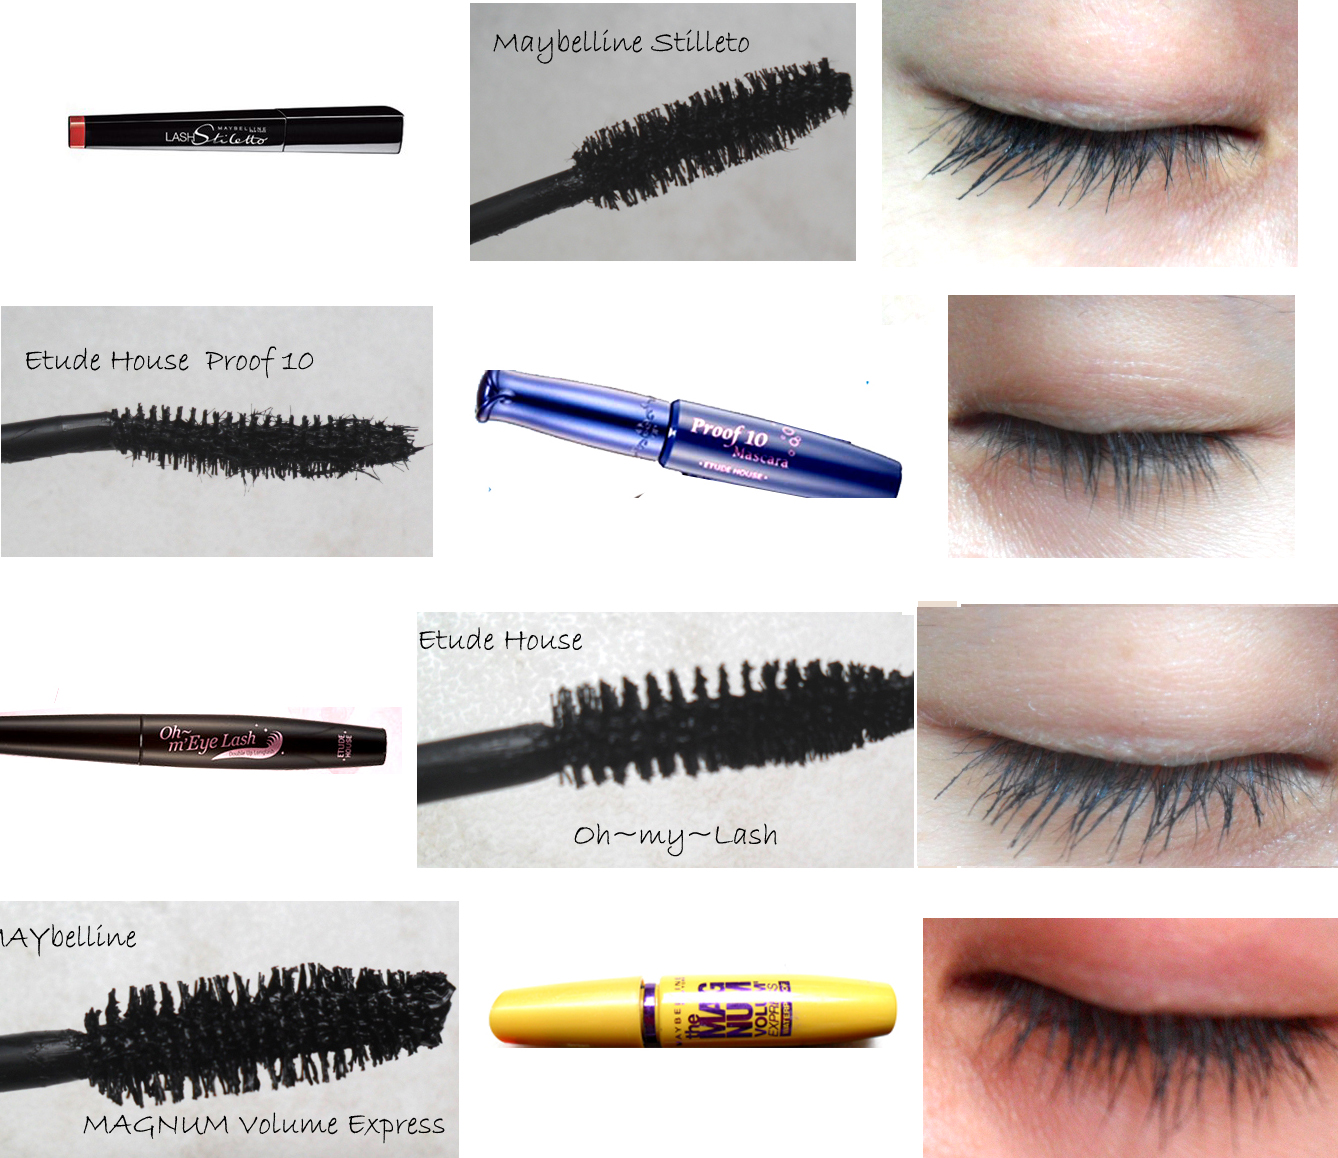 Nichido clear mascara price philippines